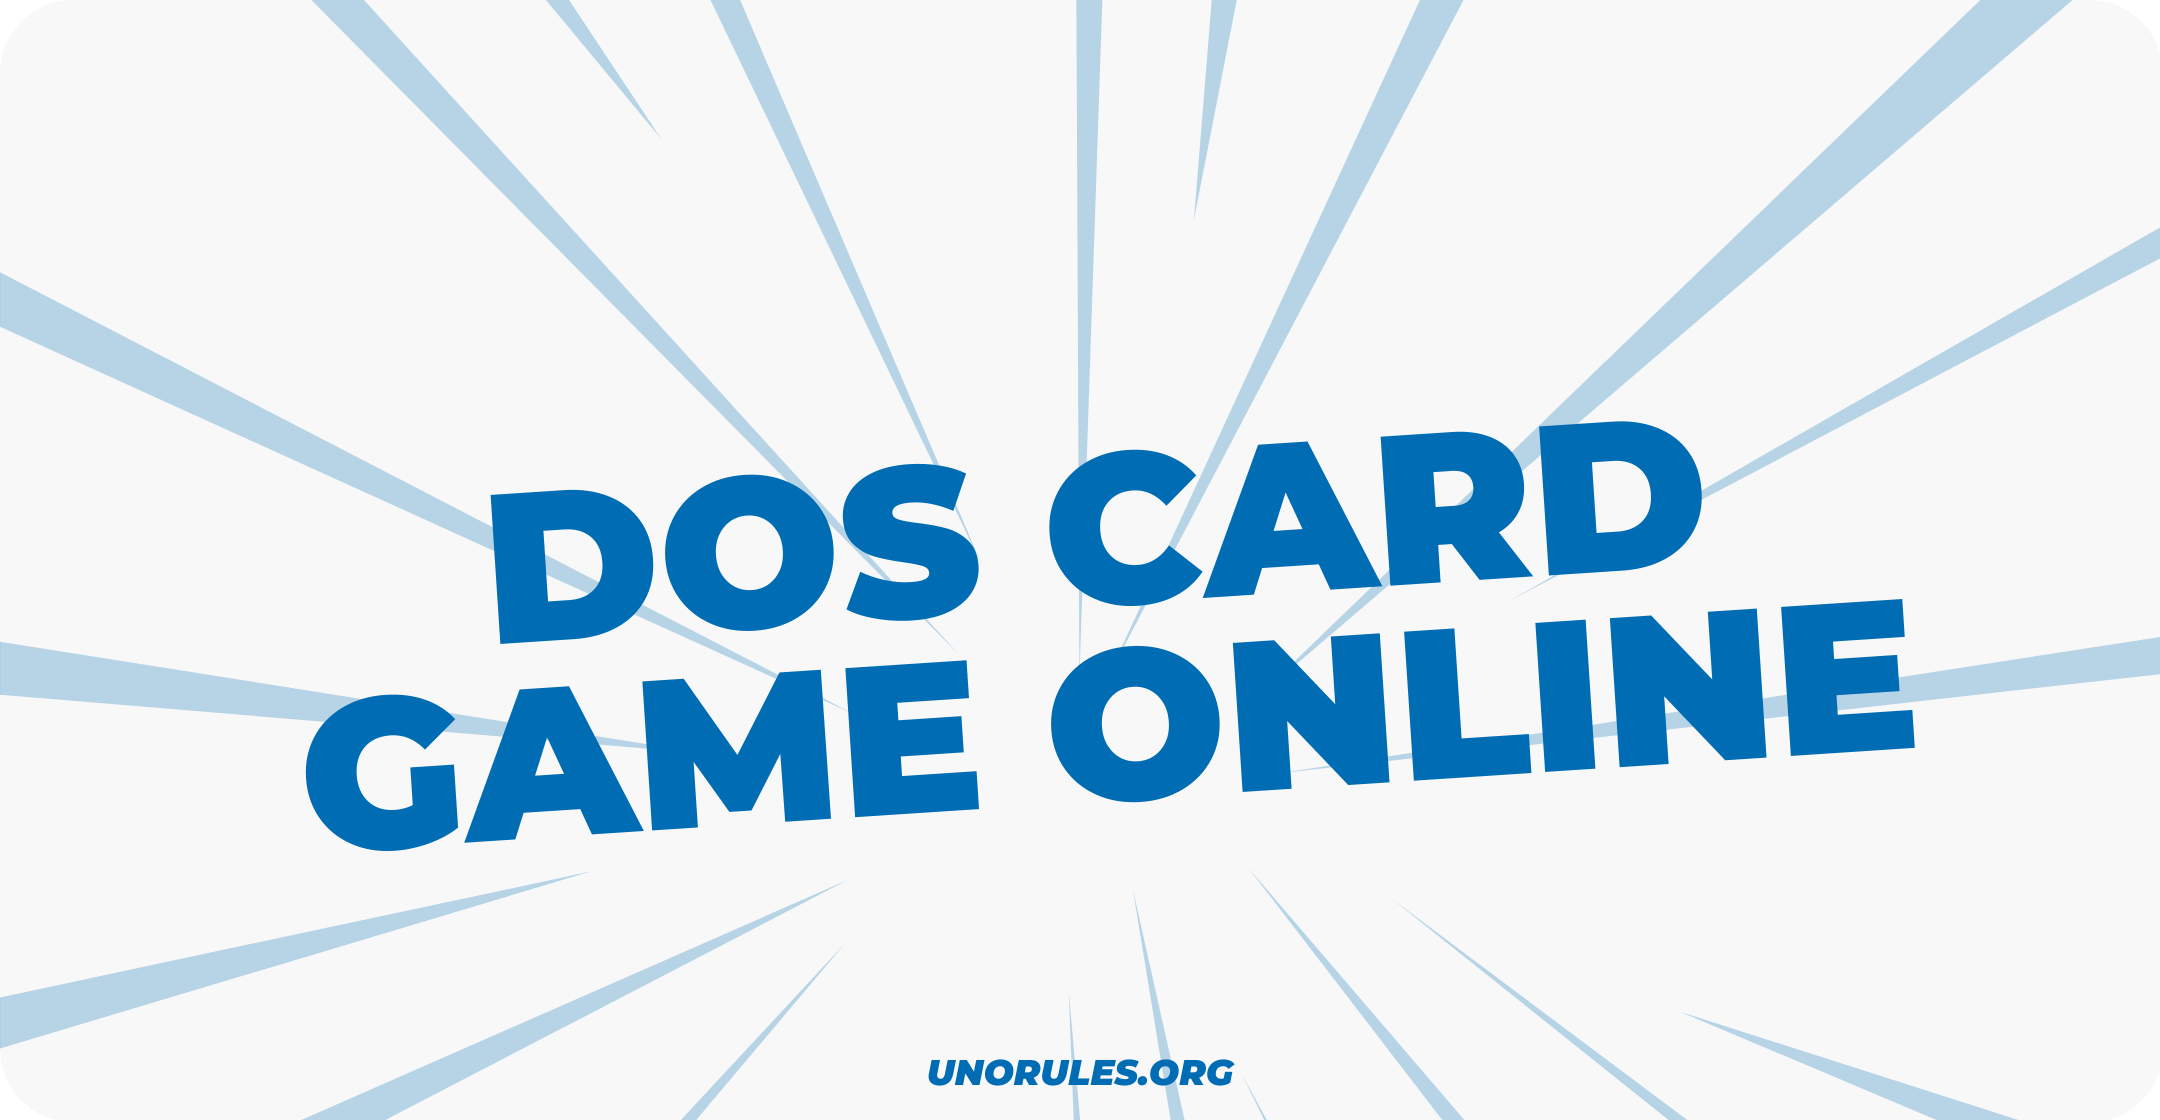 Dos card game online